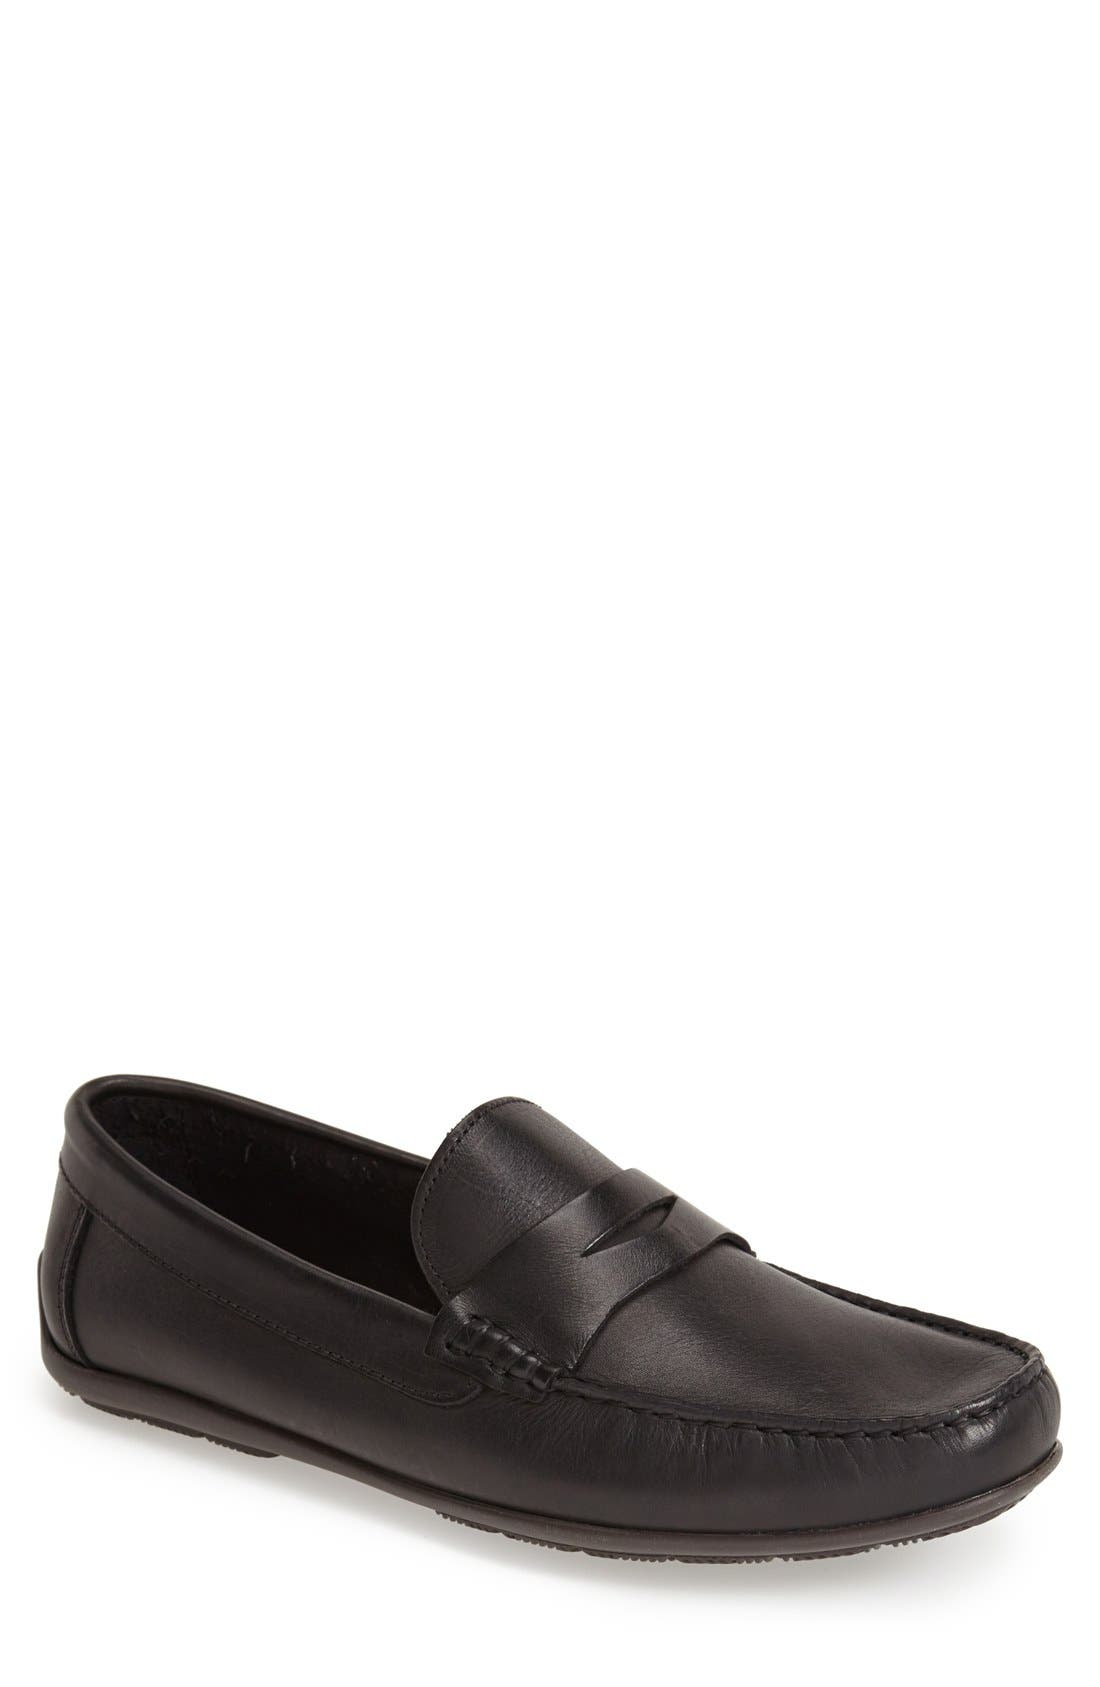 'Paris' Leather Penny Loafer,                             Main thumbnail 1, color,                             BLACK